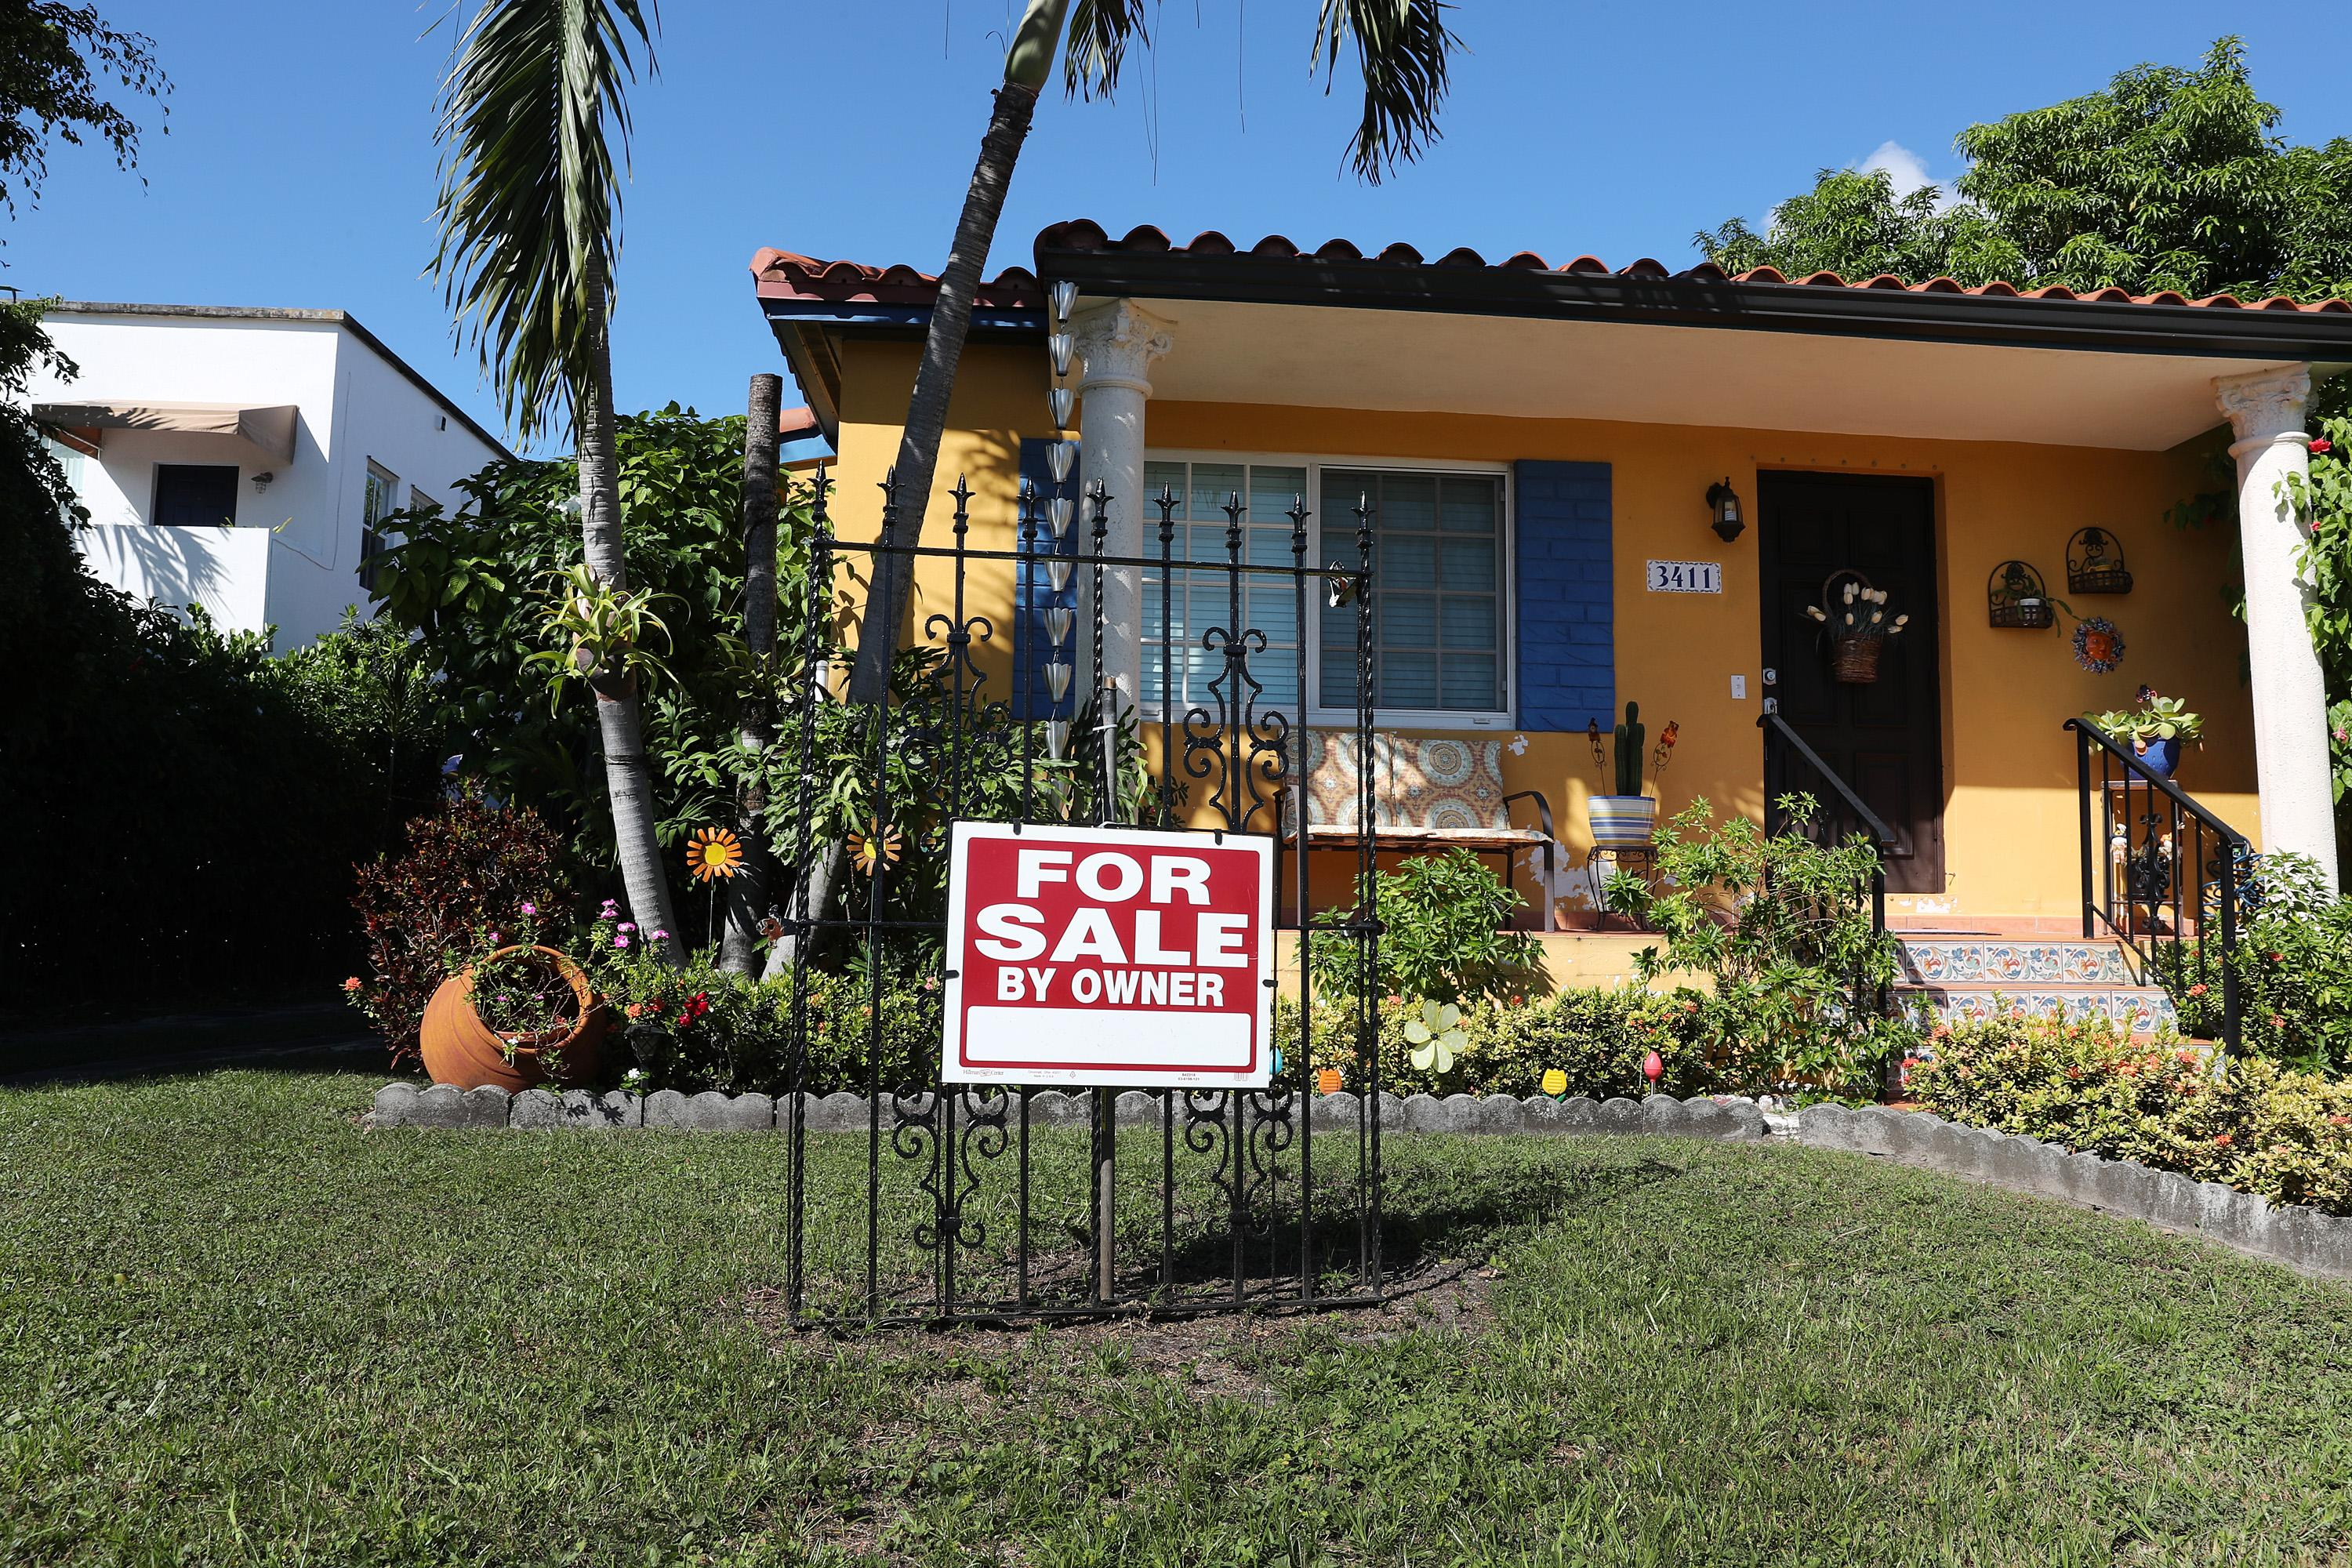 Why new FICO standards should keep risky borrowers out of the housing market